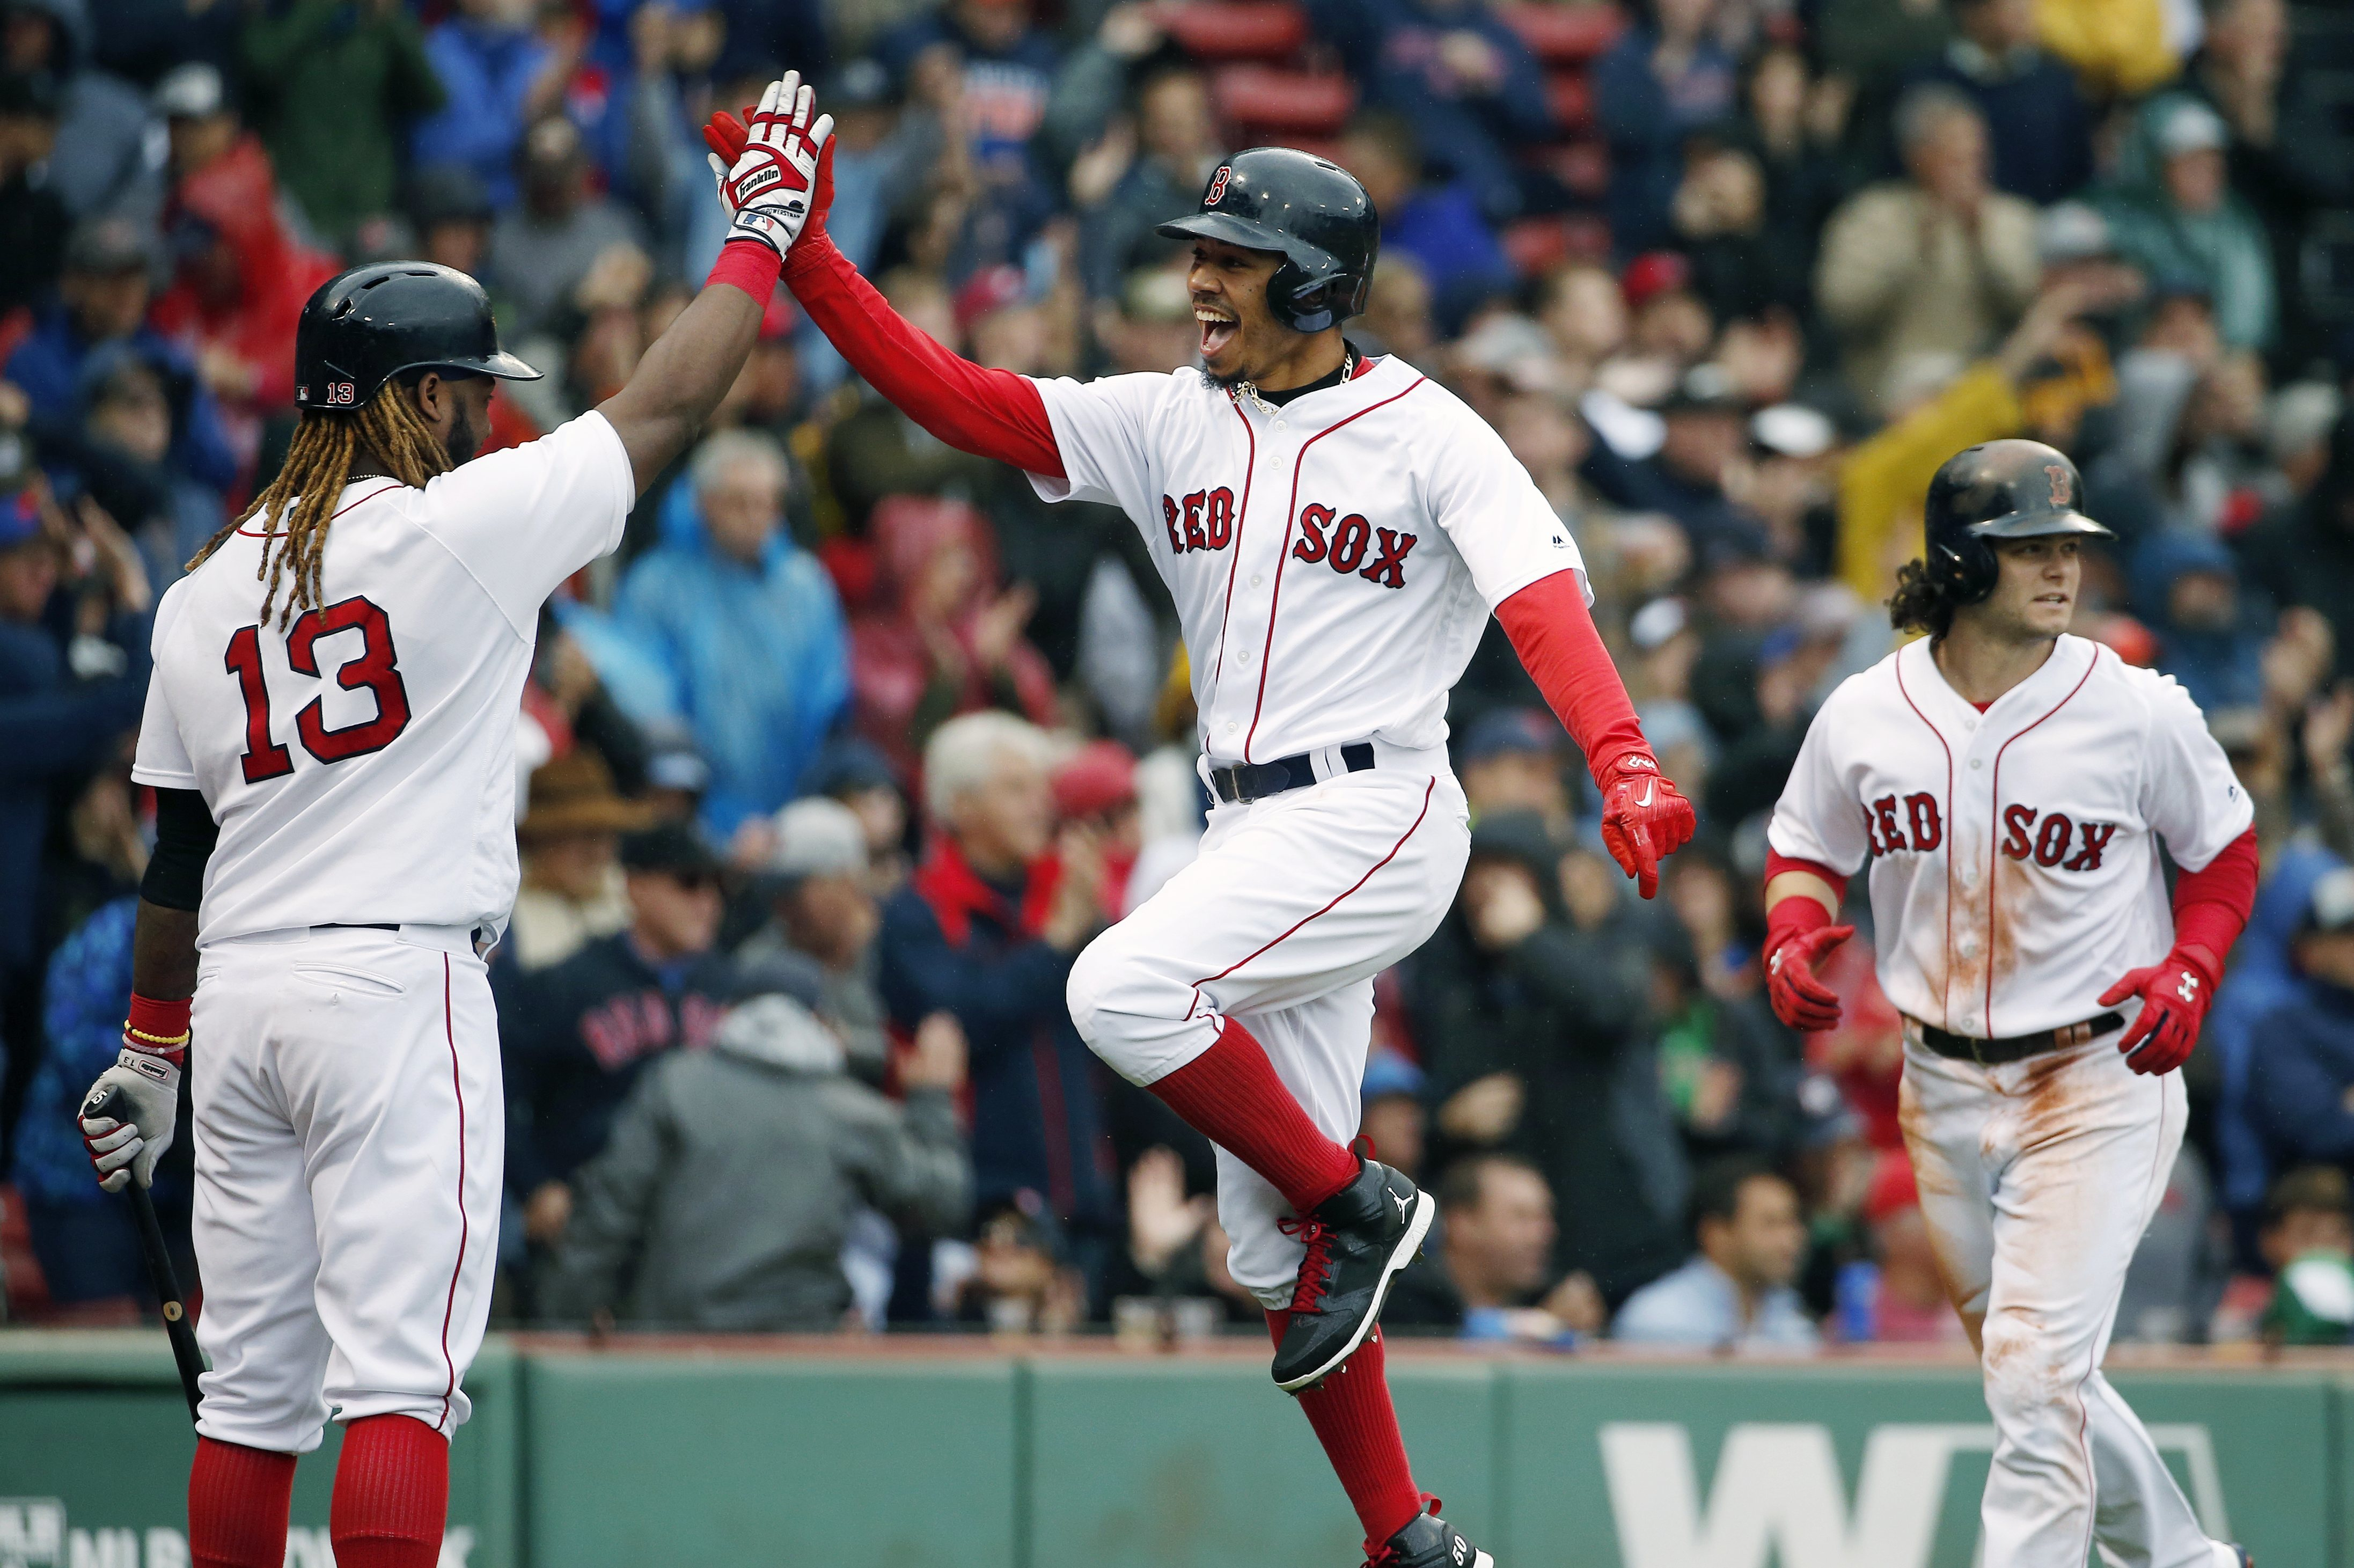 Red Sox clinch back-to-back first-place finishes for first time since 1916